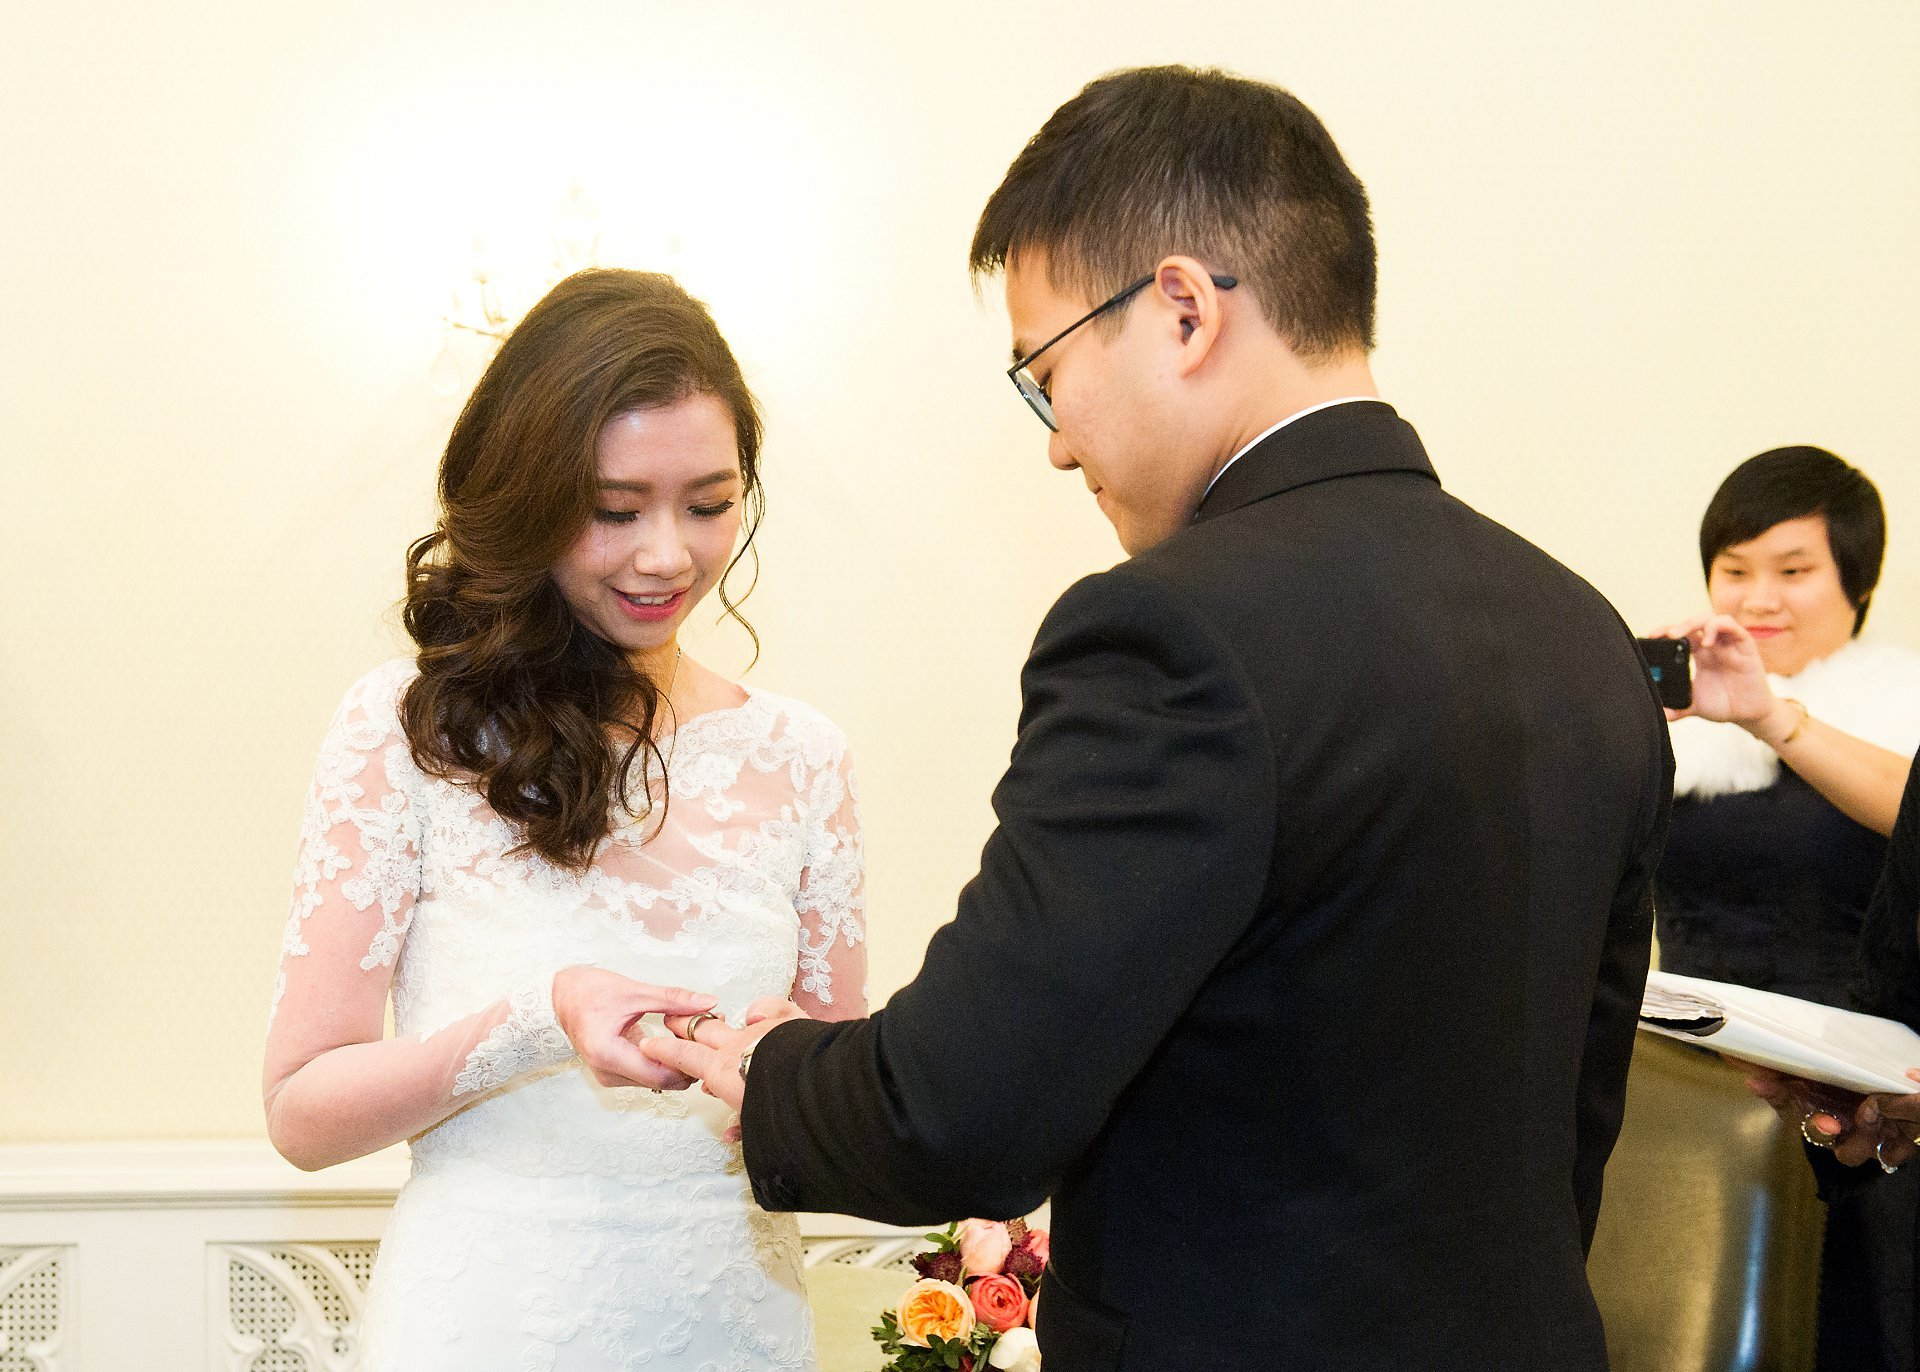 Bride places ring on groom's finger at Chelsea Old Town Hall wedding